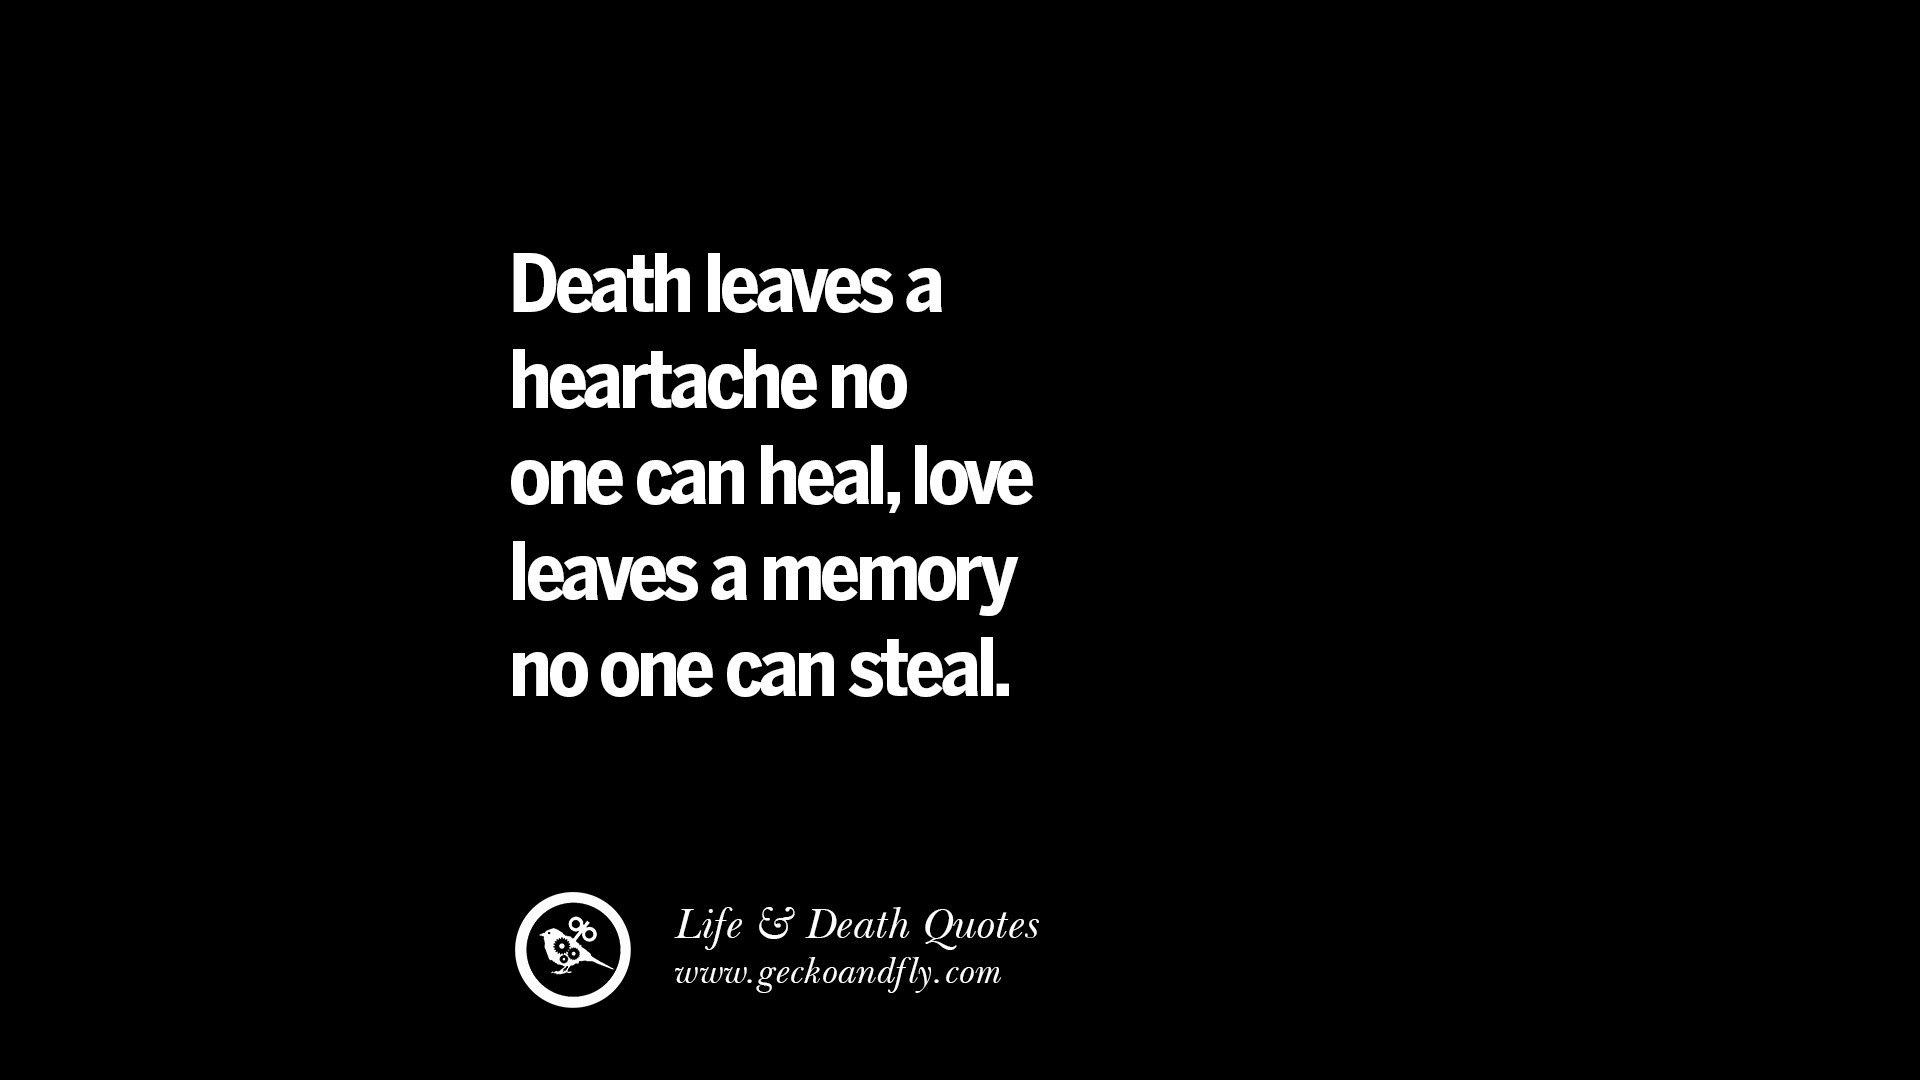 inspirational quotes on life death and losing someone